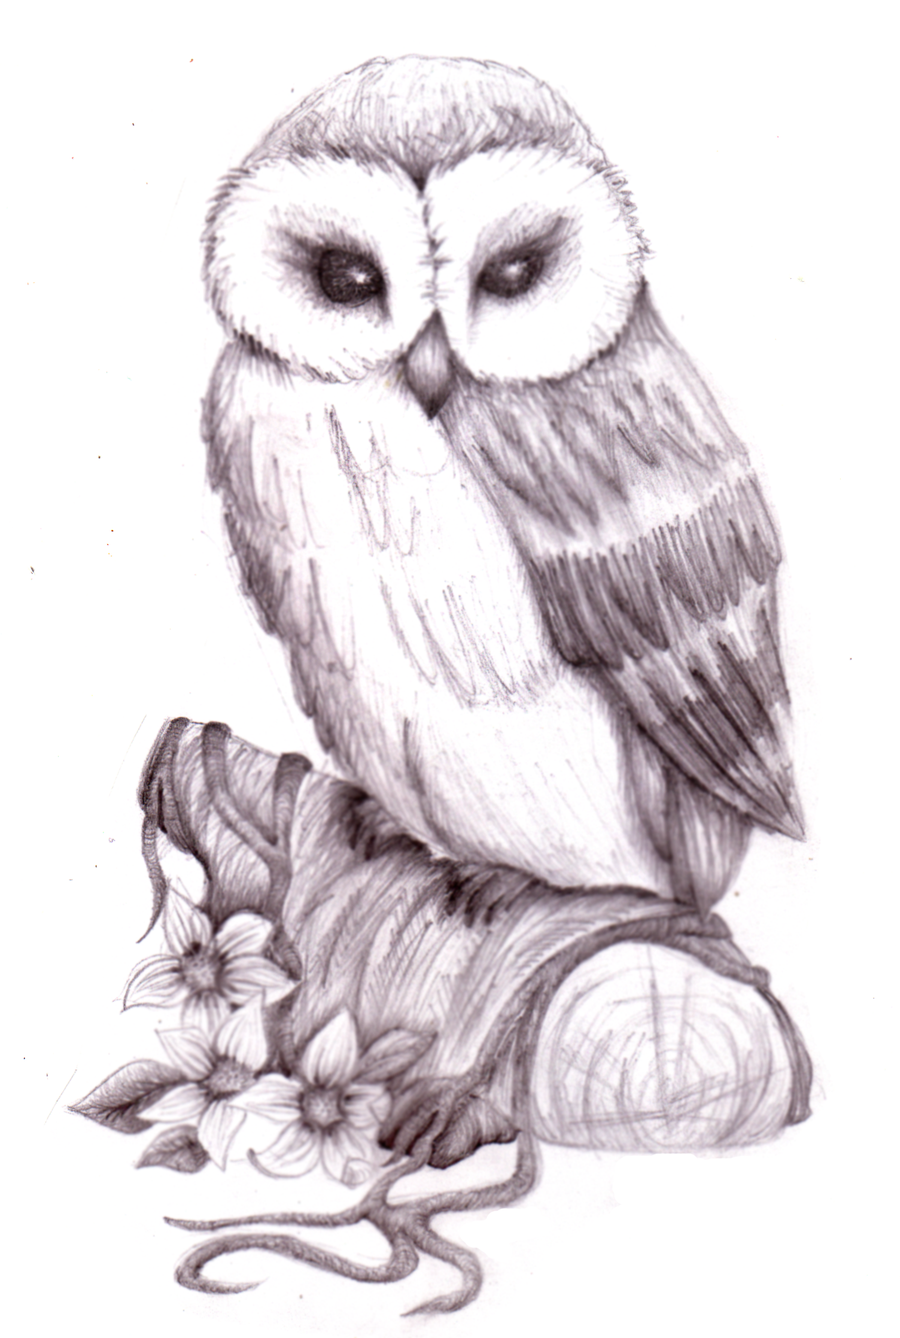 Pencil art gallery pencil drawings of animals owl pencil sketch by